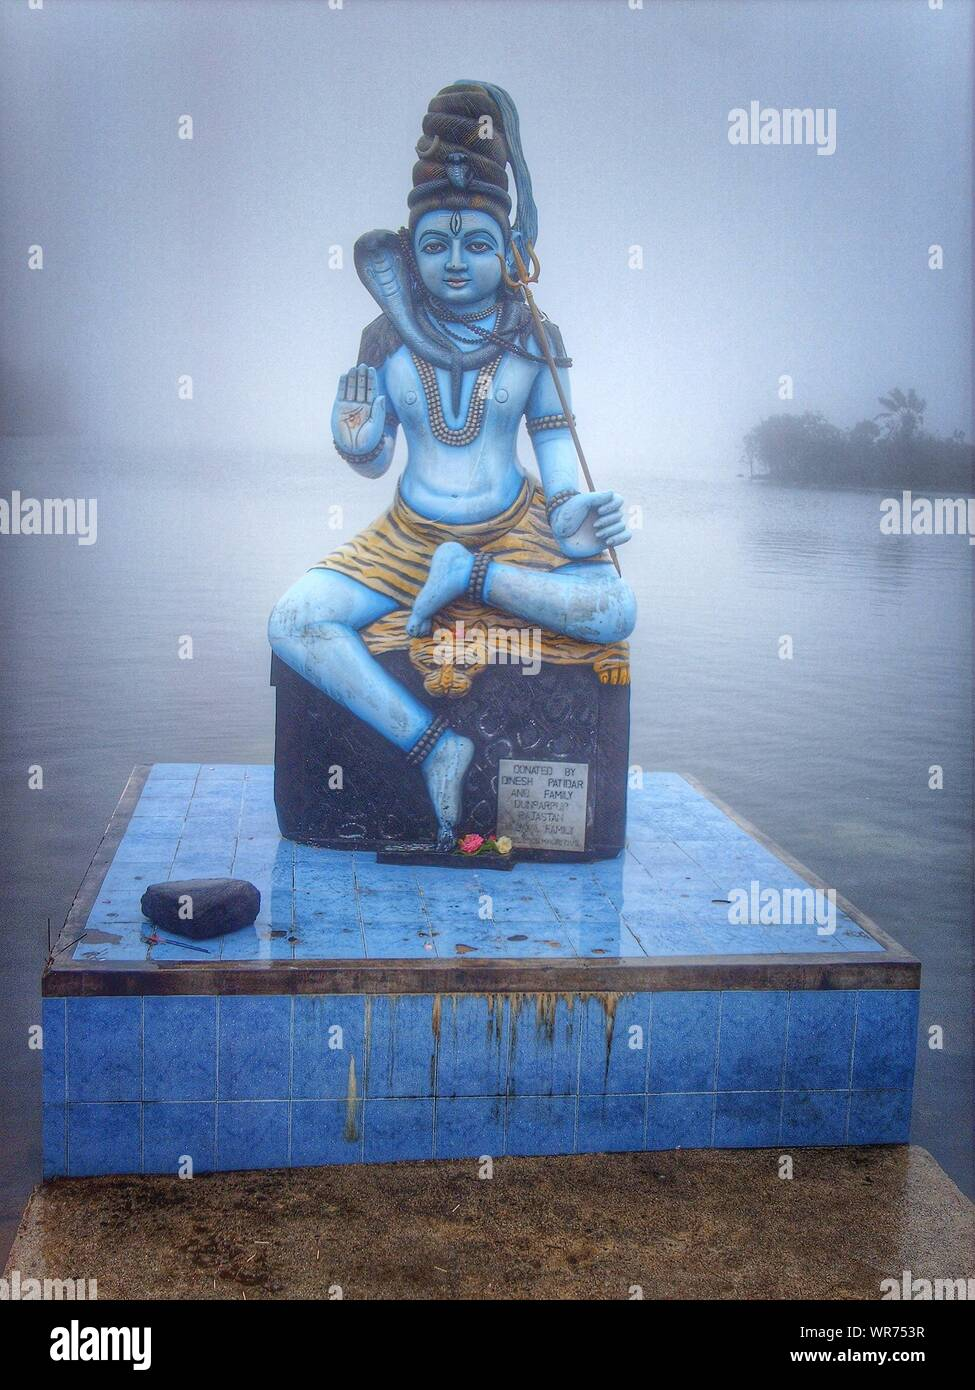 Lord Shiva High Resolution Stock Photography And Images Alamy